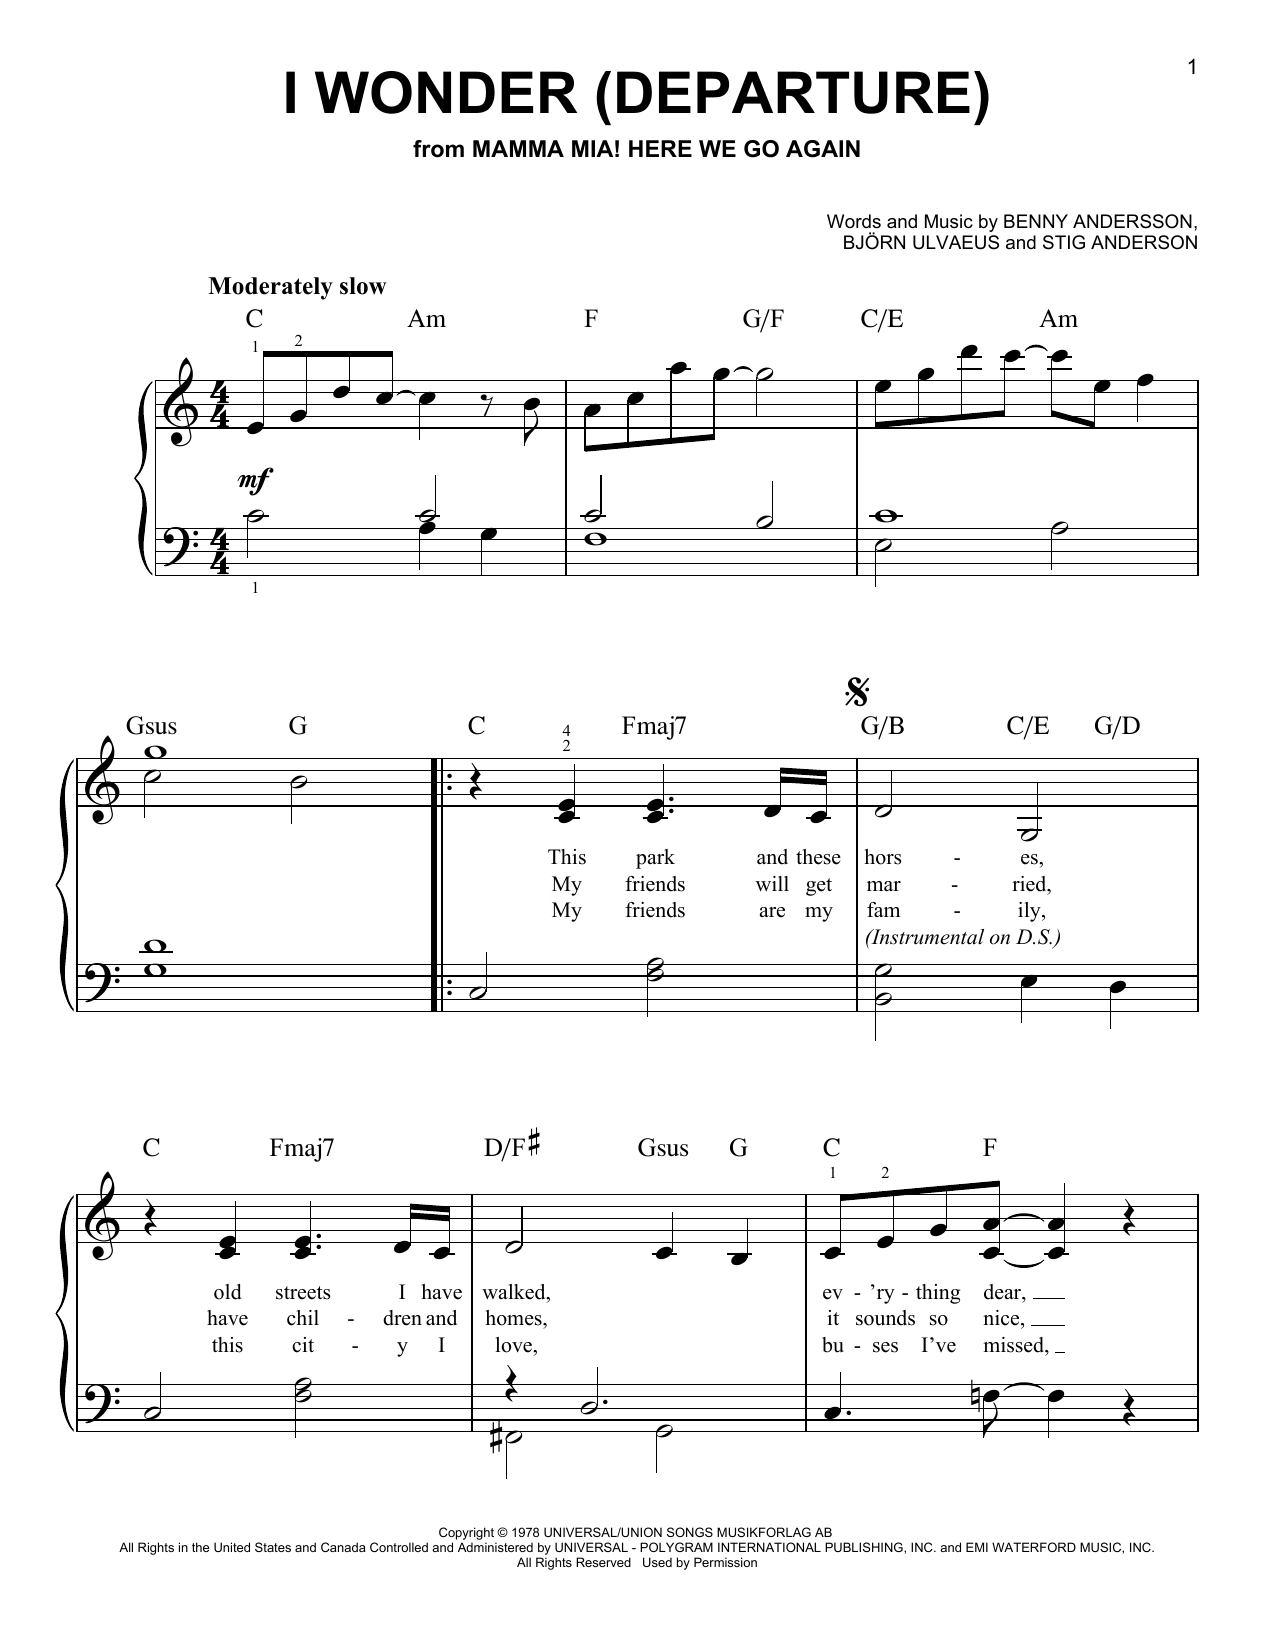 ABBA I Wonder (Departure) (from Mamma Mia! Here We Go Again) sheet music notes and chords. Download Printable PDF.